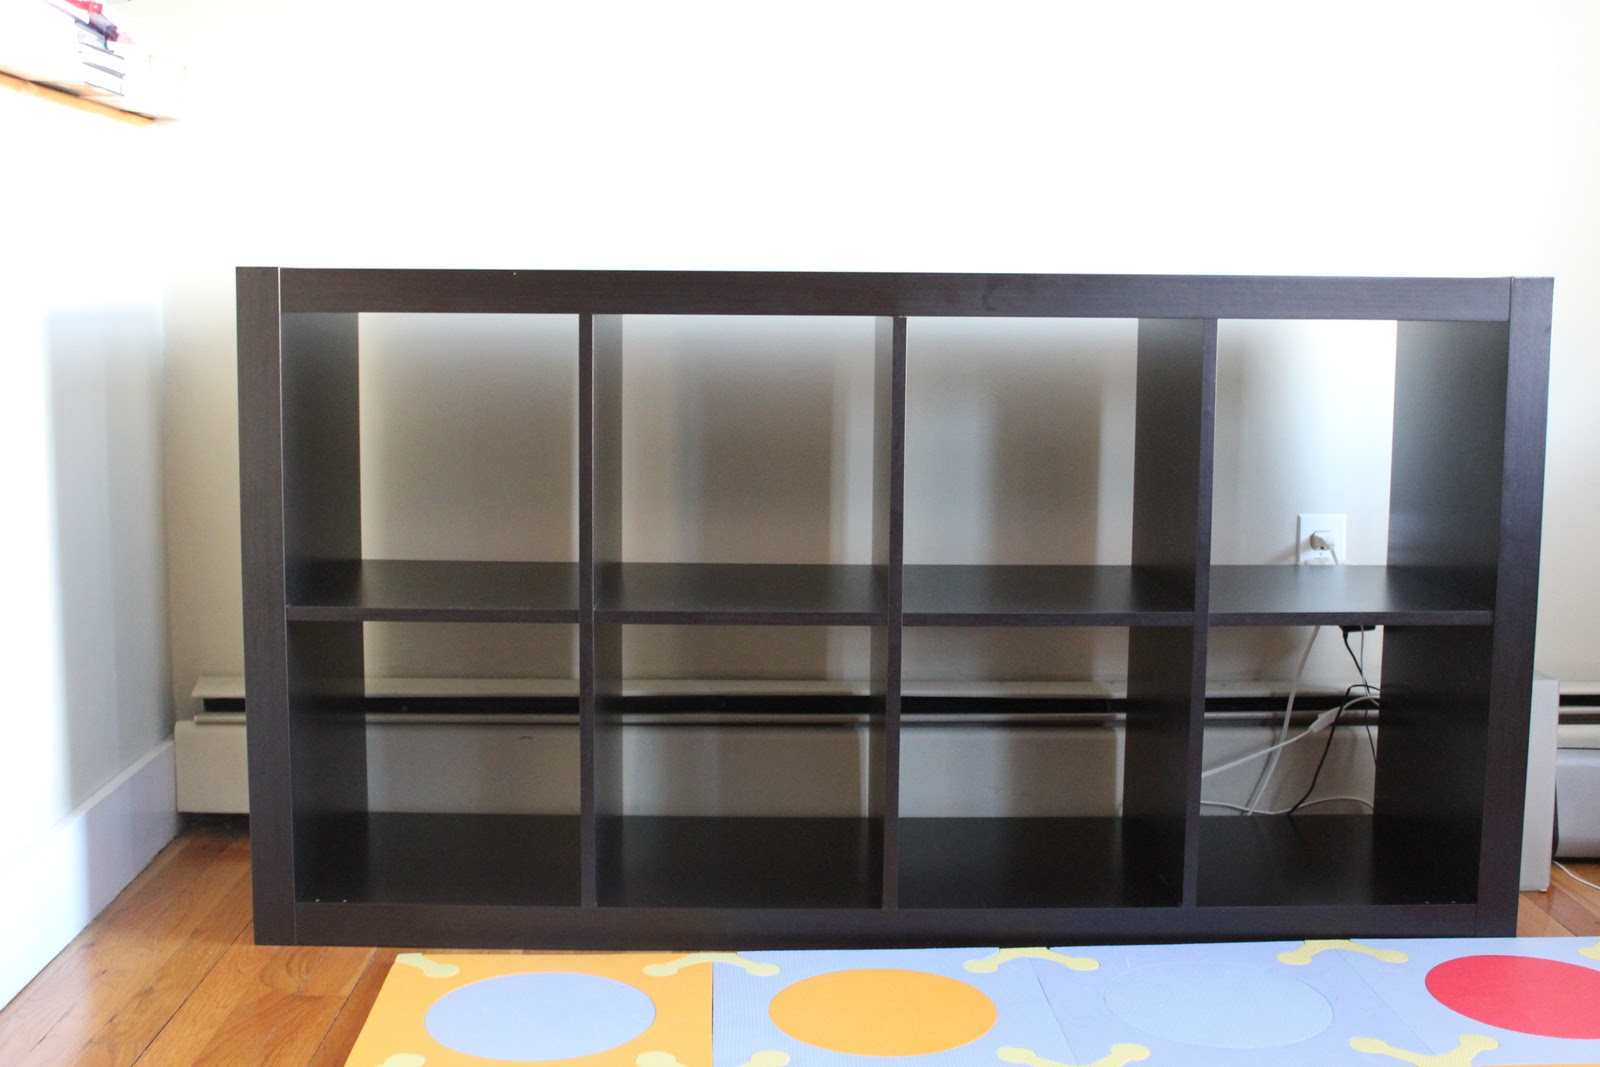 ikea expedit regal 4x2 schwarzbraun raumteiler b cherregal wandregal sideboard ebay. Black Bedroom Furniture Sets. Home Design Ideas